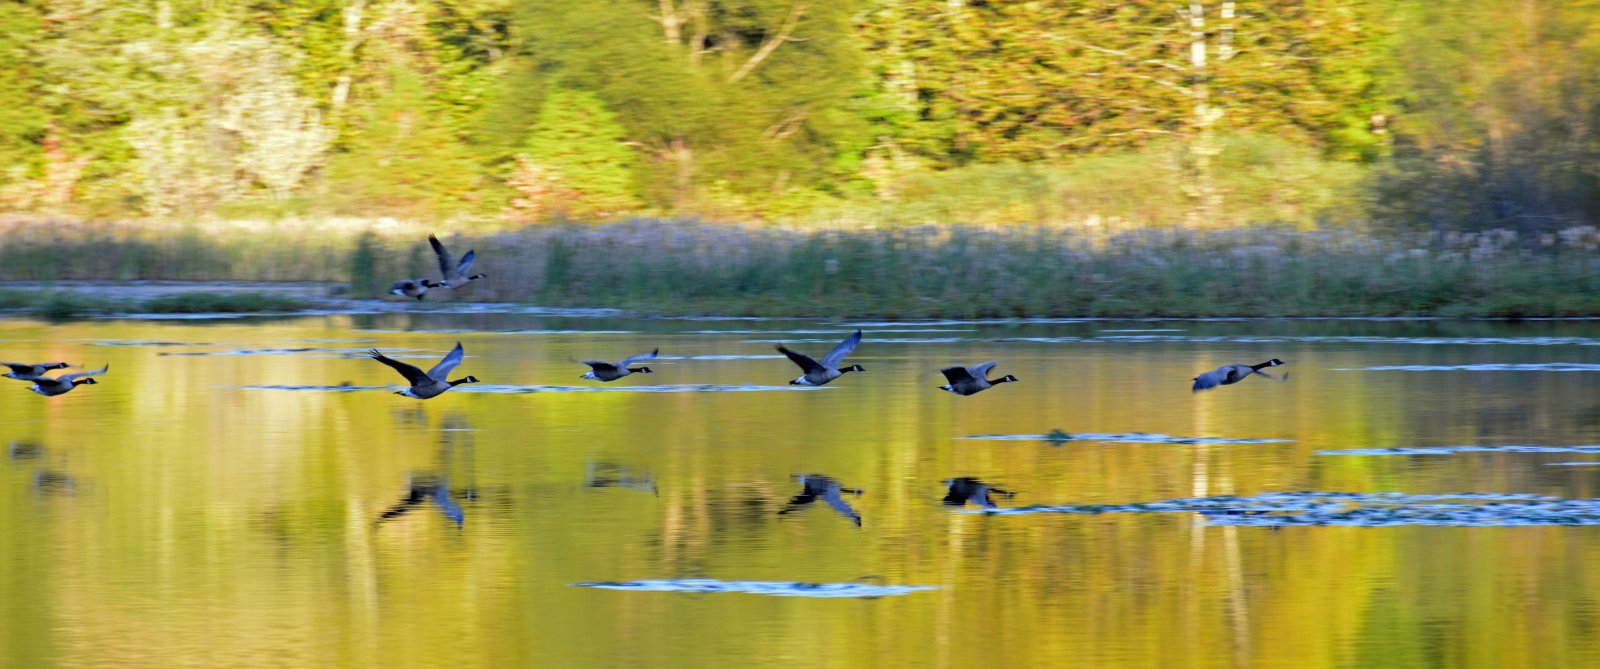 Click image for larger version  Name:Geese-s.jpg Views:164 Size:186.0 KB ID:249869